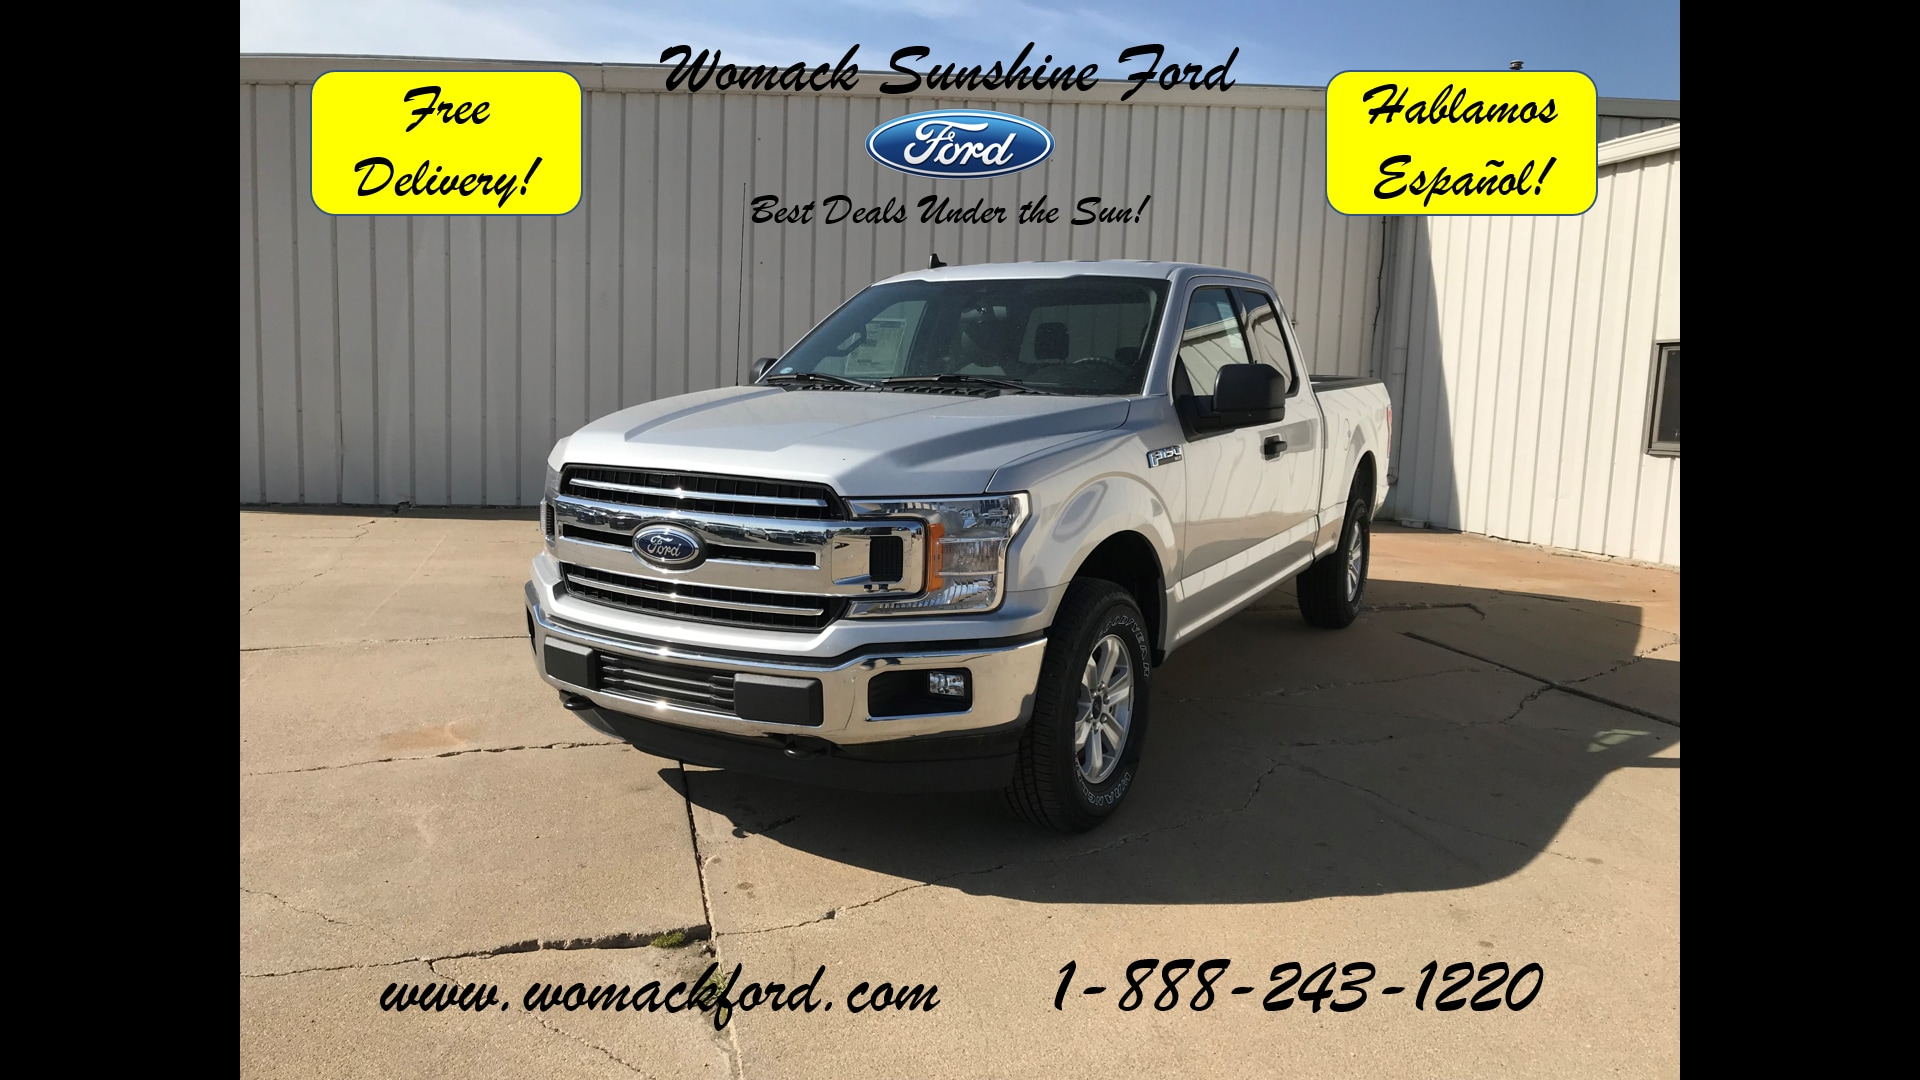 2019 Ford F150 SuperCab Truck